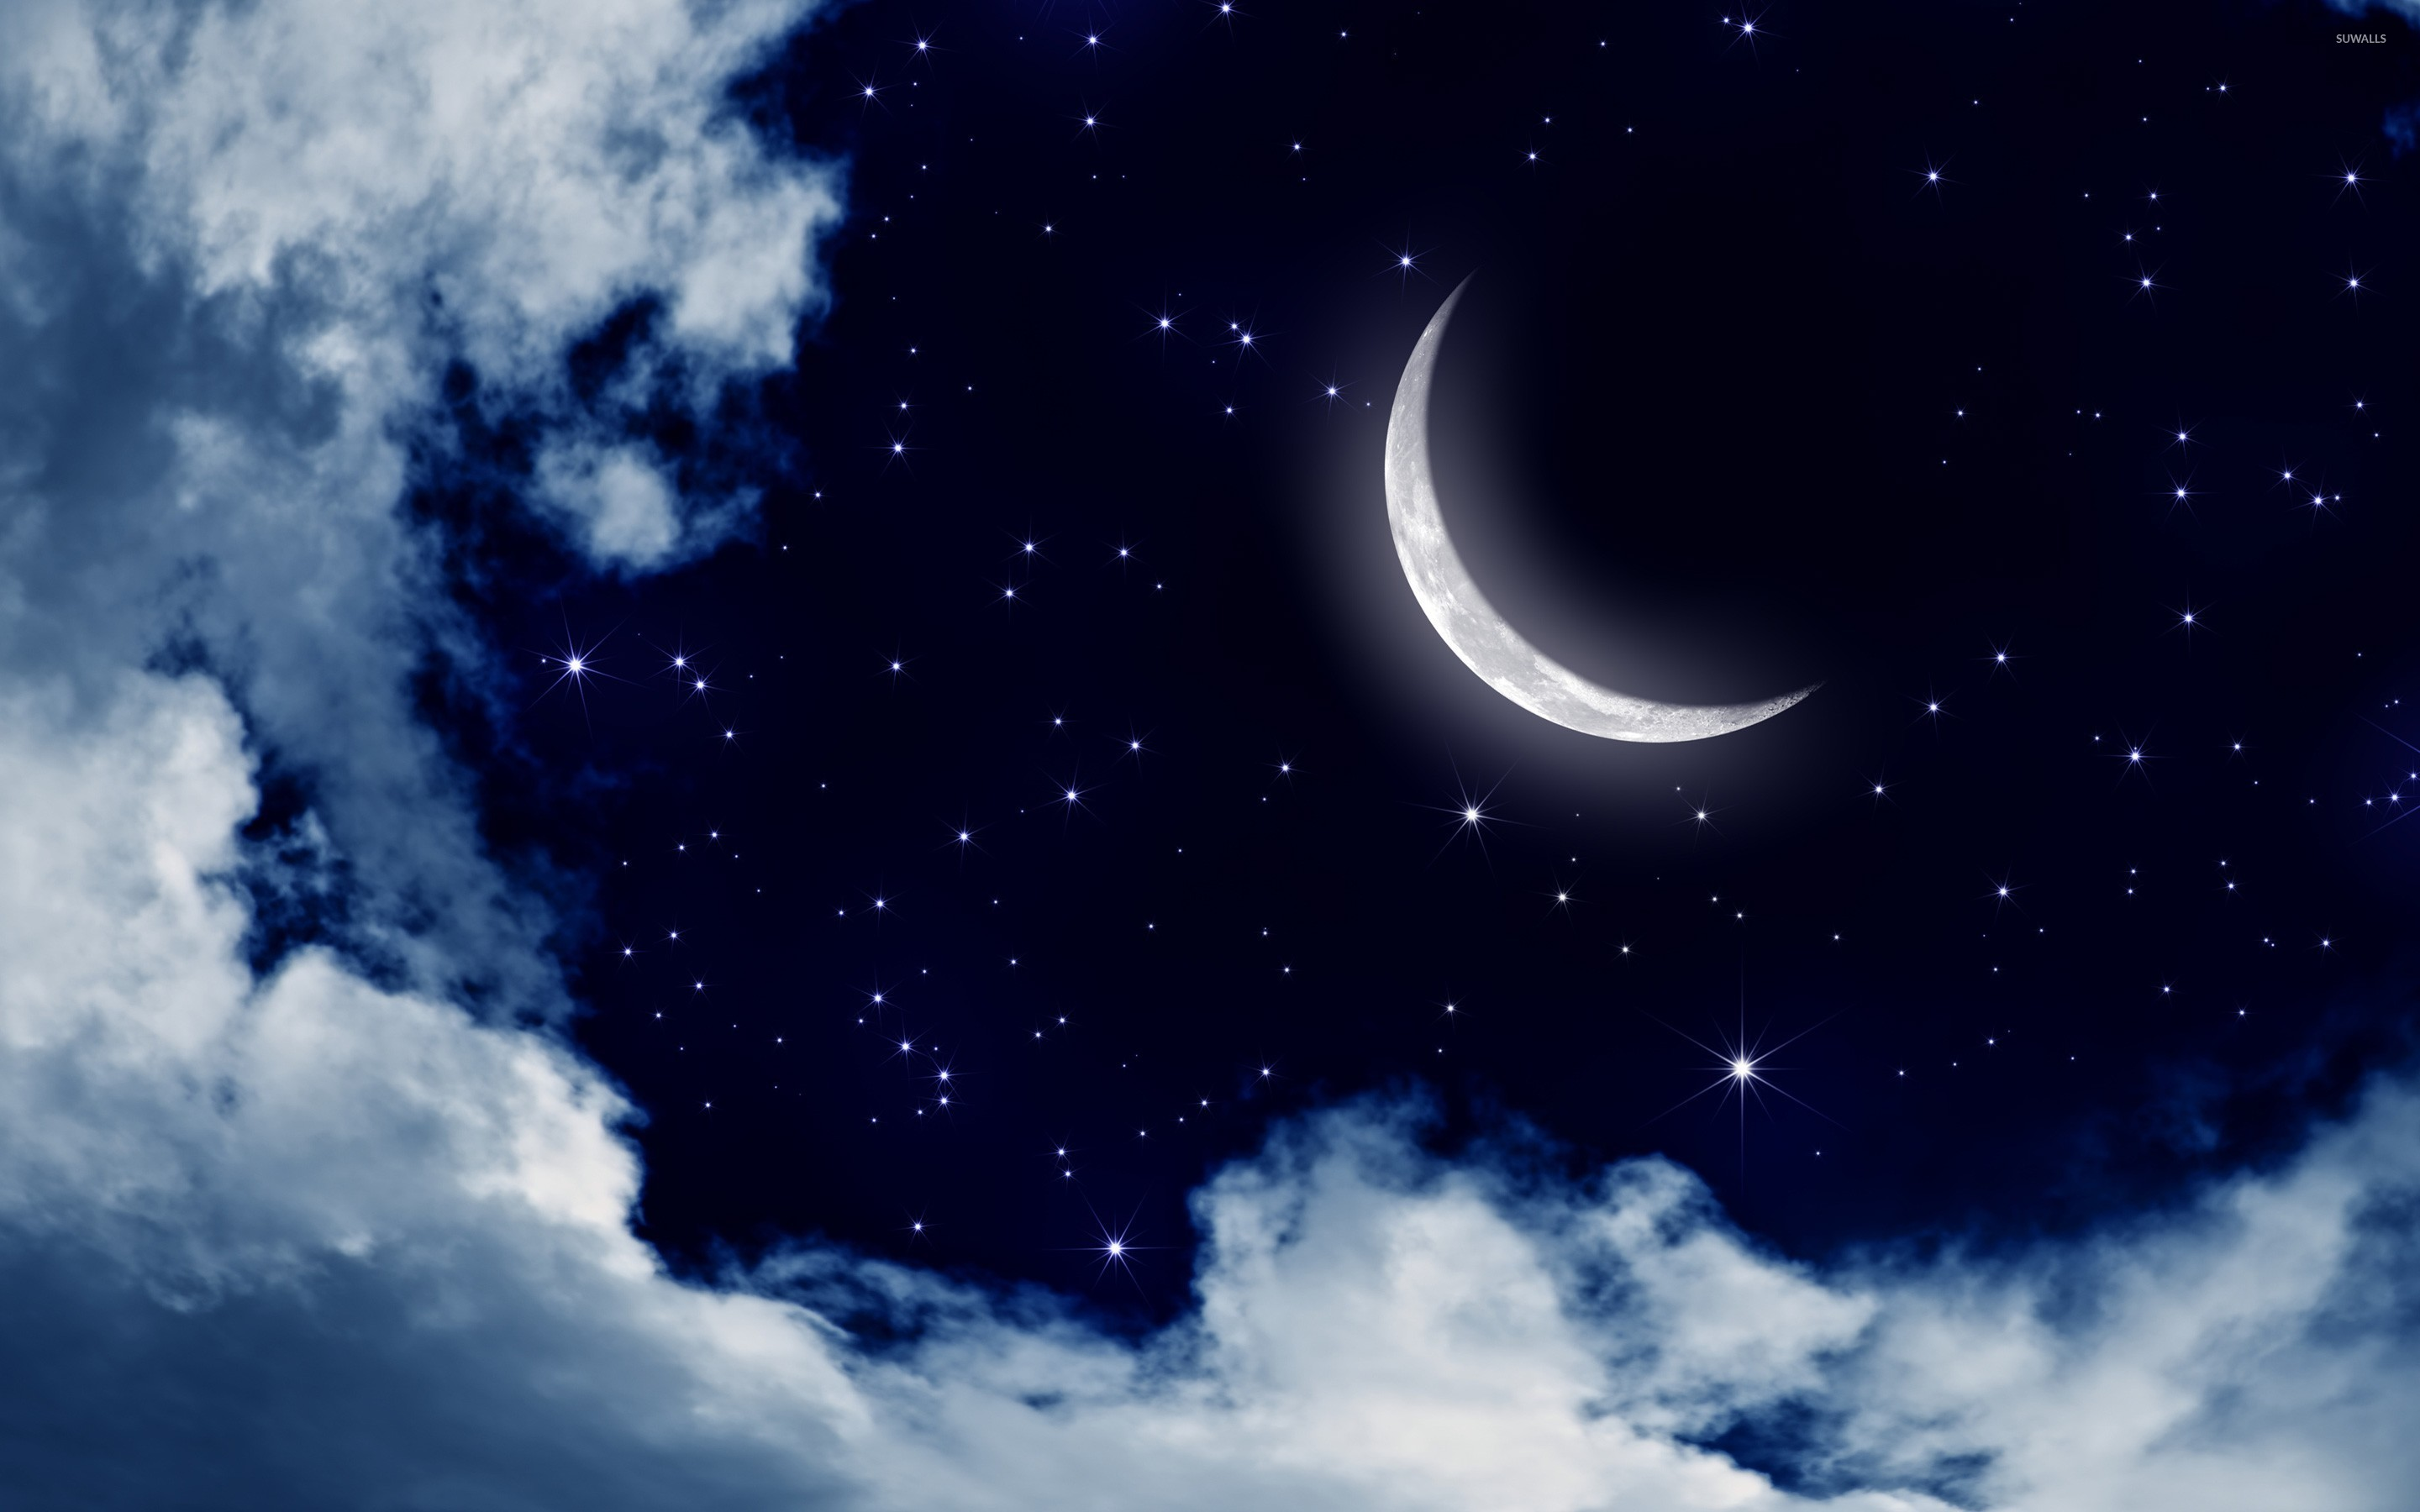 Moon and stars in the sky wallpaper - Digital Art wallpapers - #25176